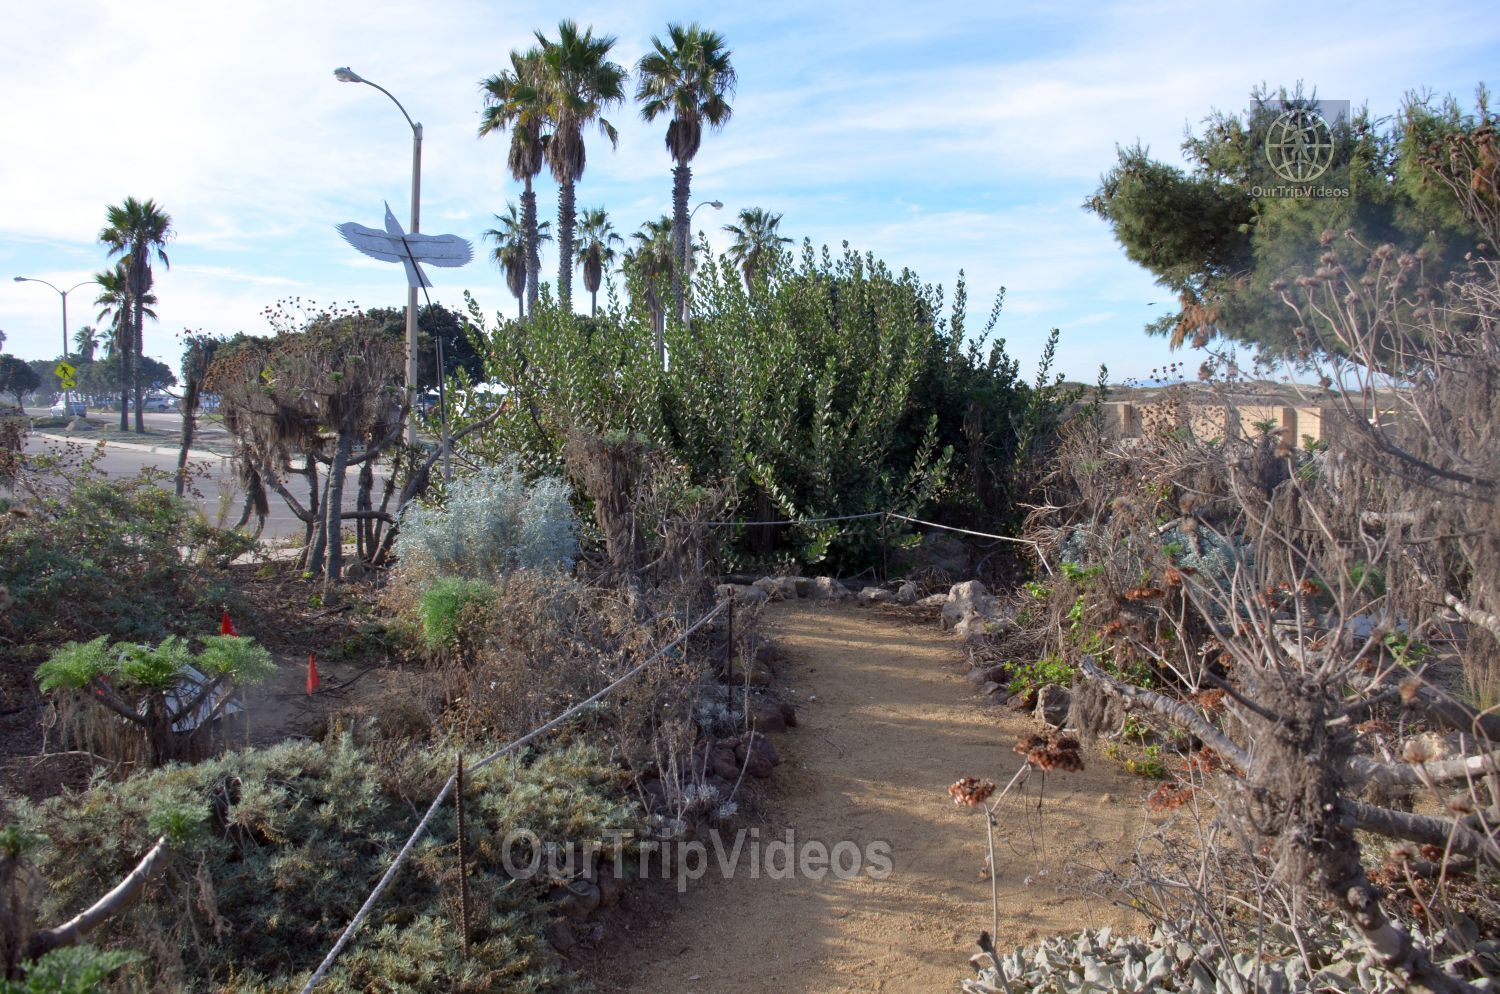 The Robert JL Visitor Center and Harbor cove beach, Ventura, CA, USA - Picture 15 of 25